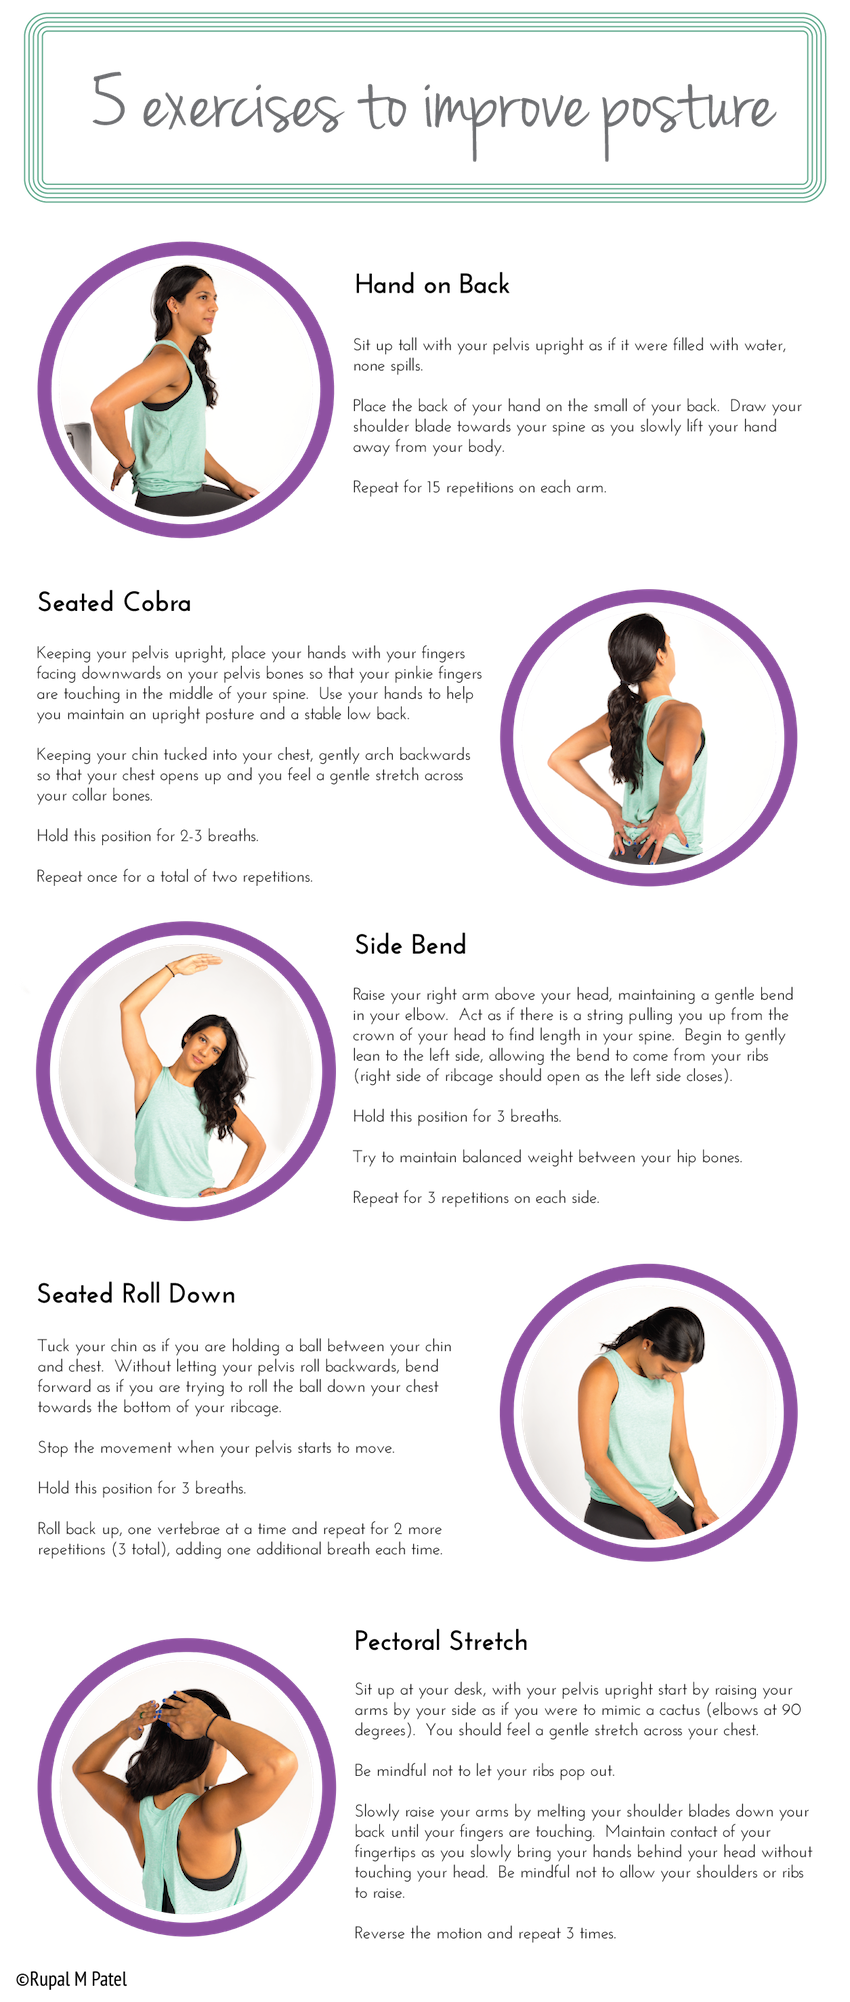 5 Exercises To Perfect Your Posture Infographic